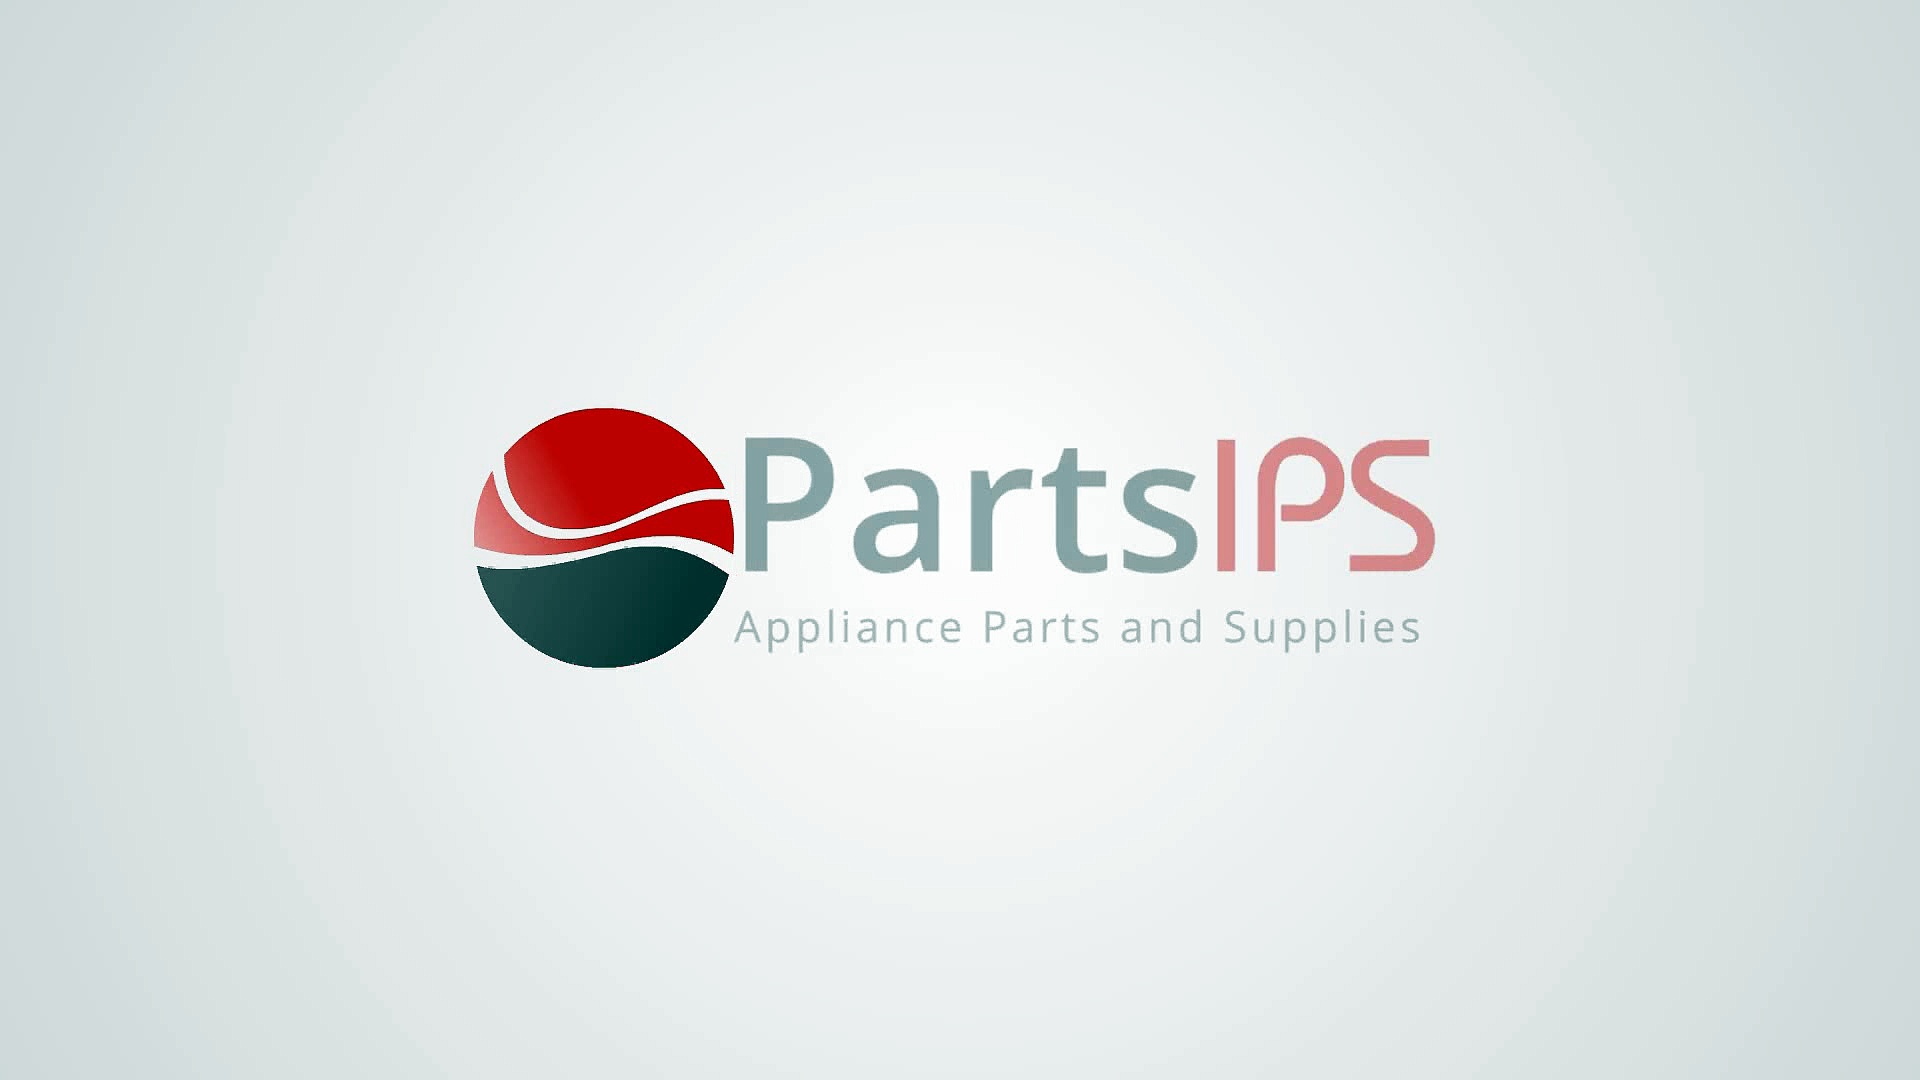 Maytag Appliance Parts- Appliance Parts and Supplies- PartsIPS